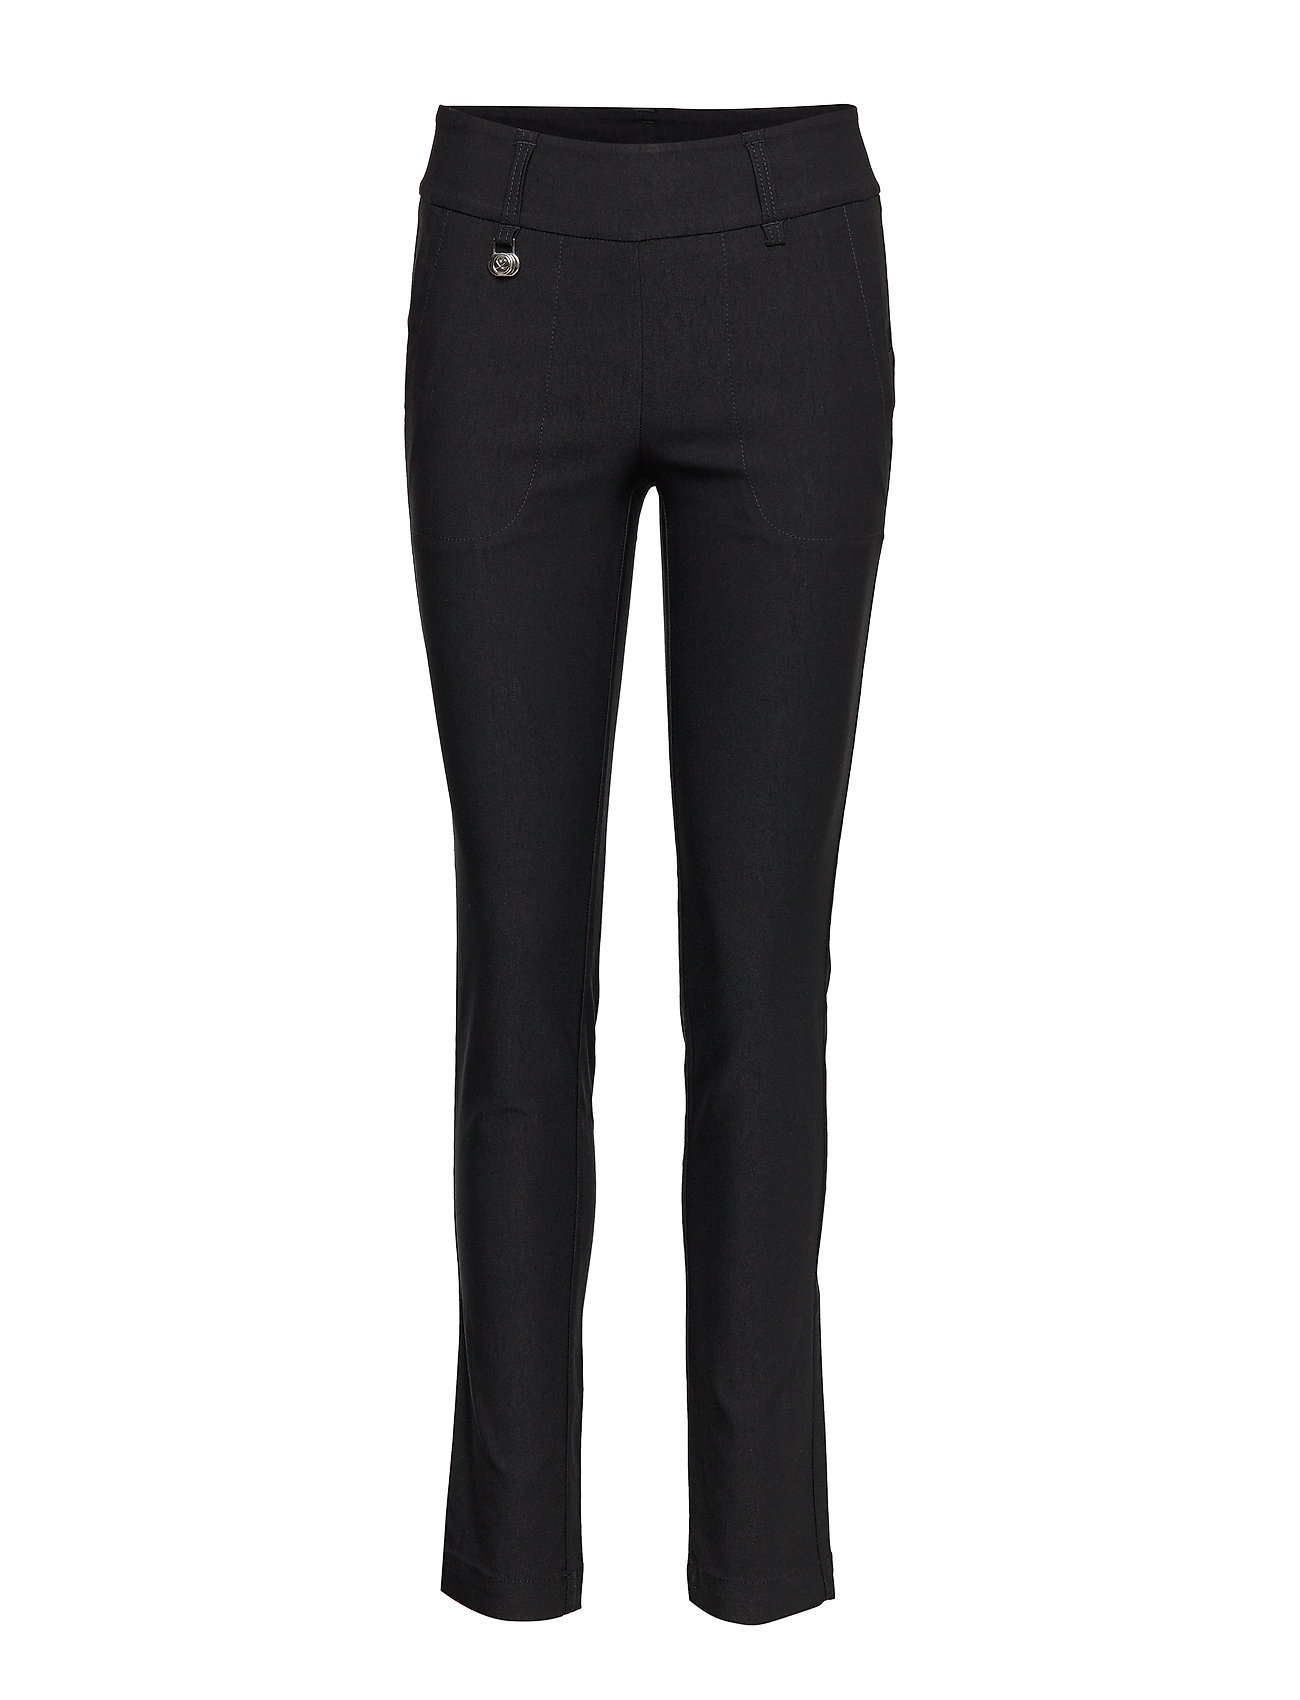 Daily Sports MAGIC PANTS 32 INCH - BLACK